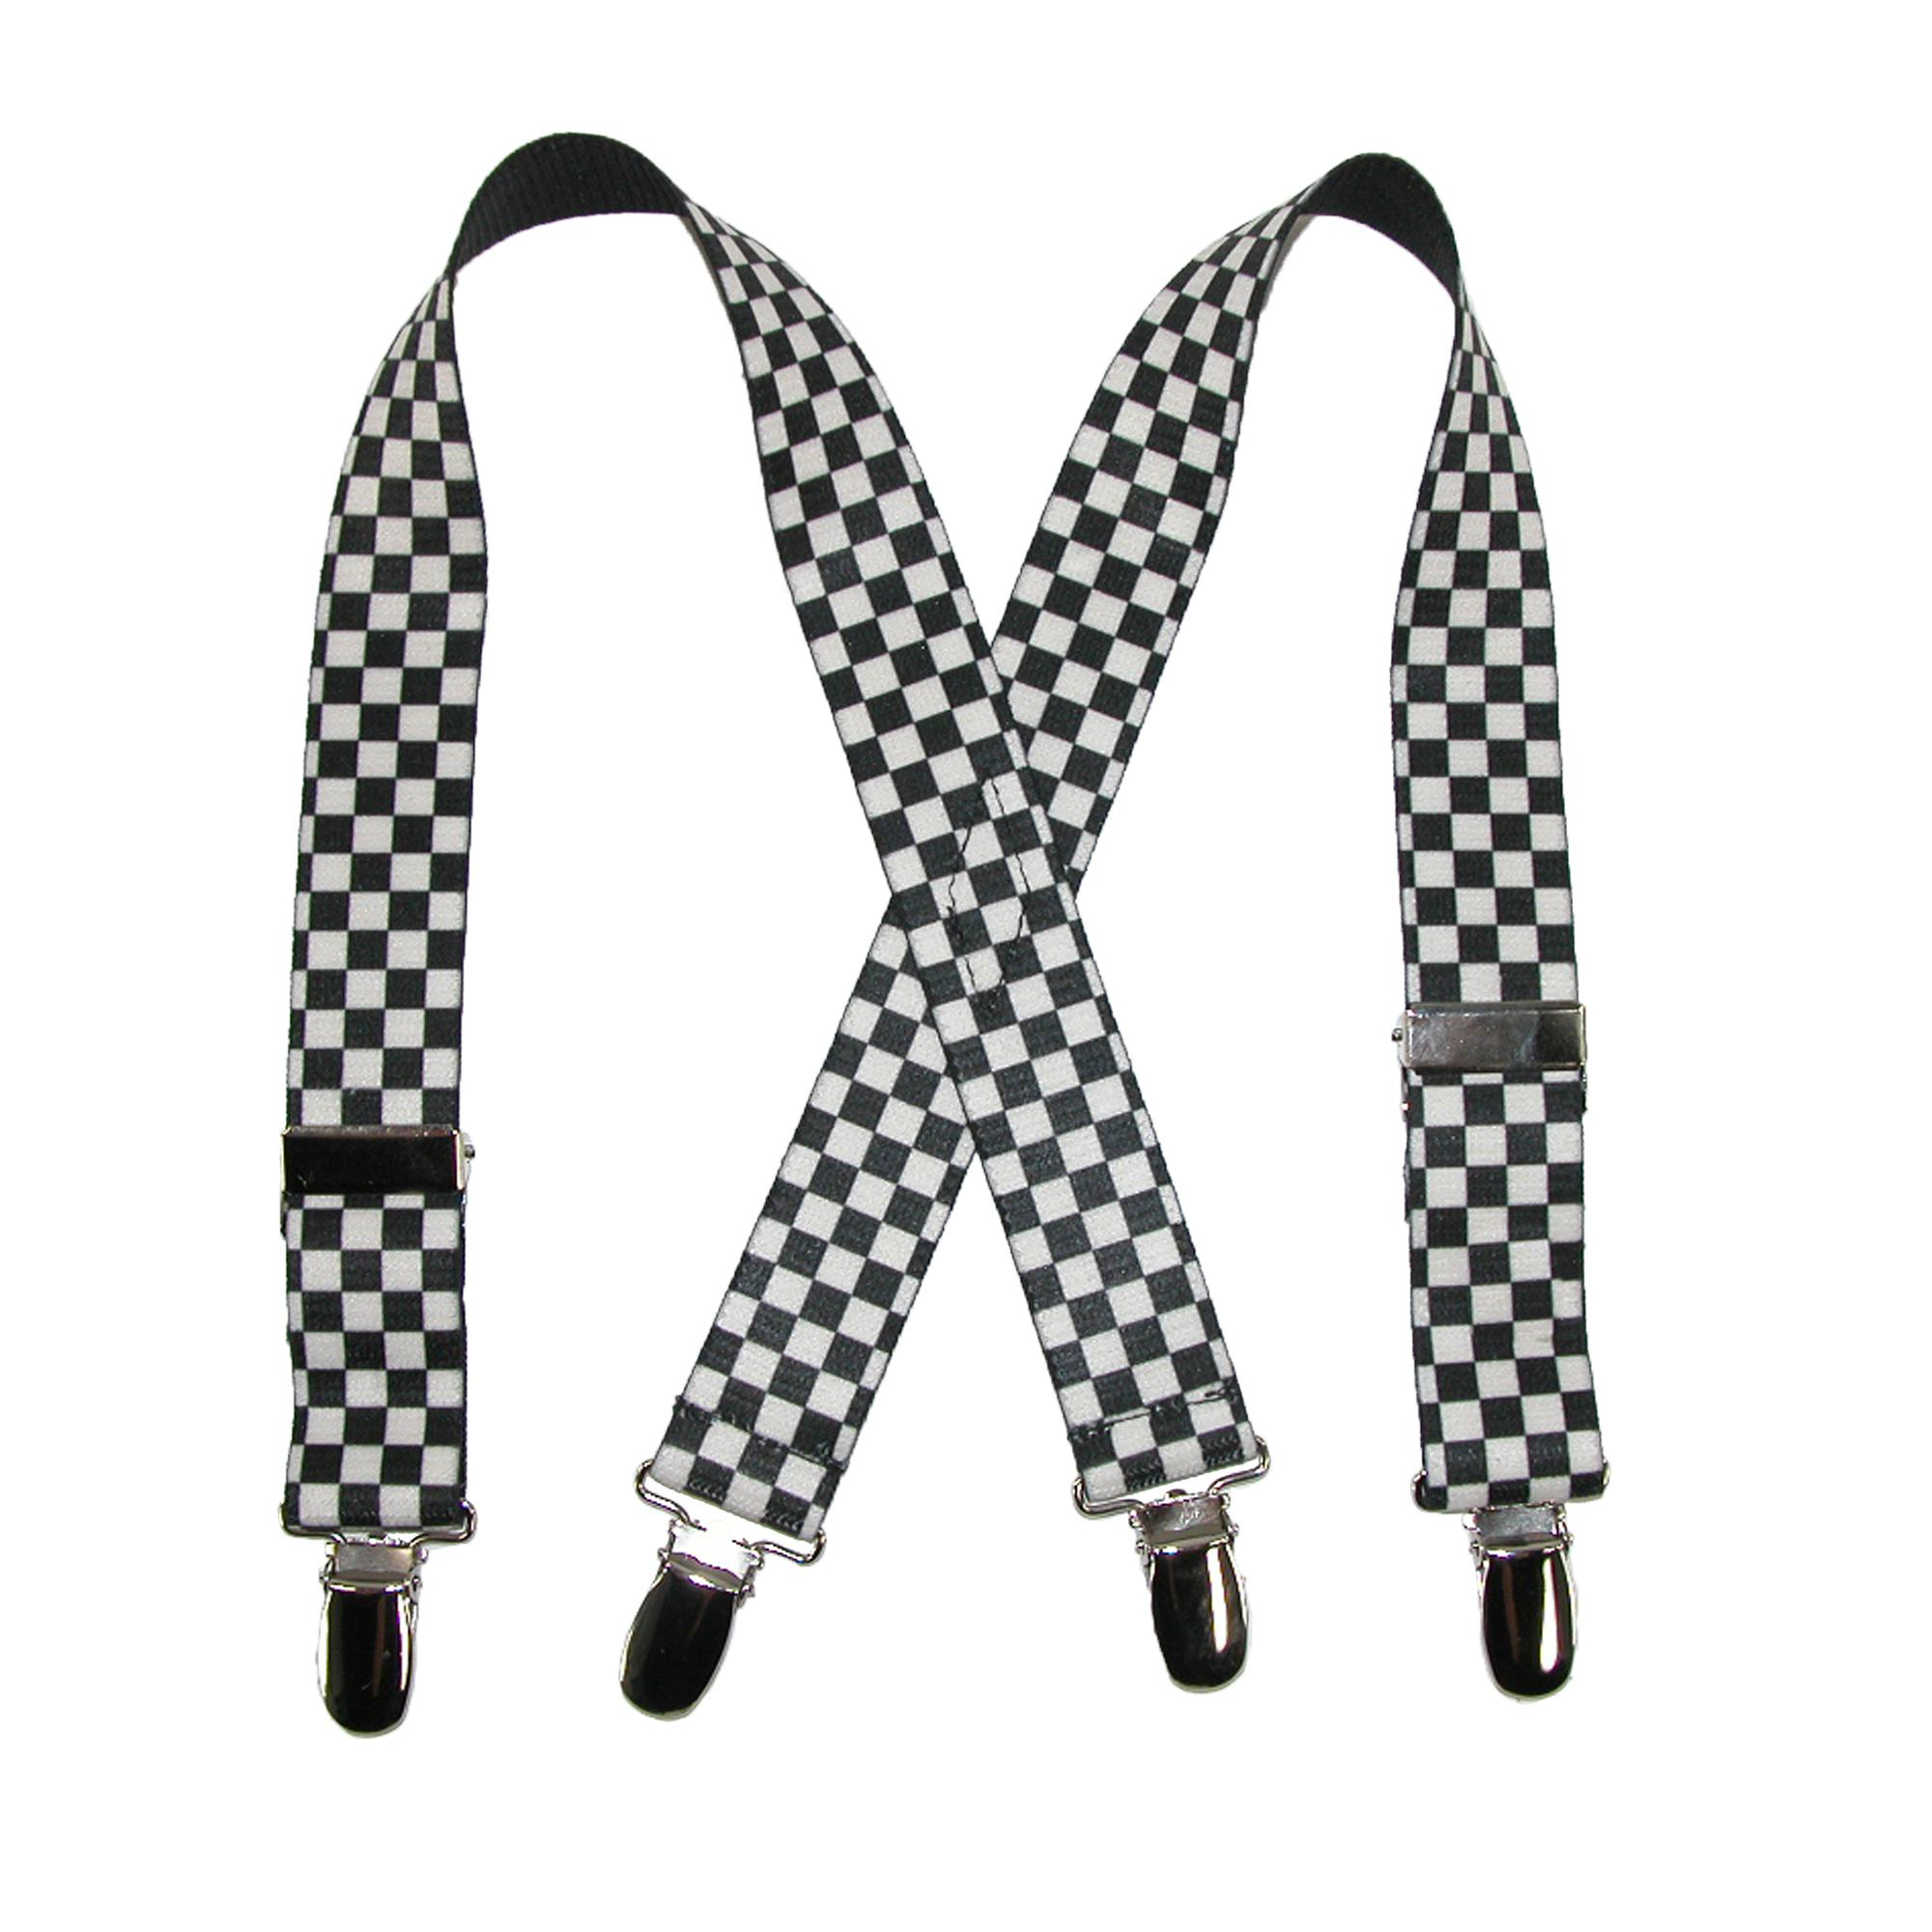 CTM_Infants'_Elastic_Clip-End_1_Inch_Checkered_Suspenders_-